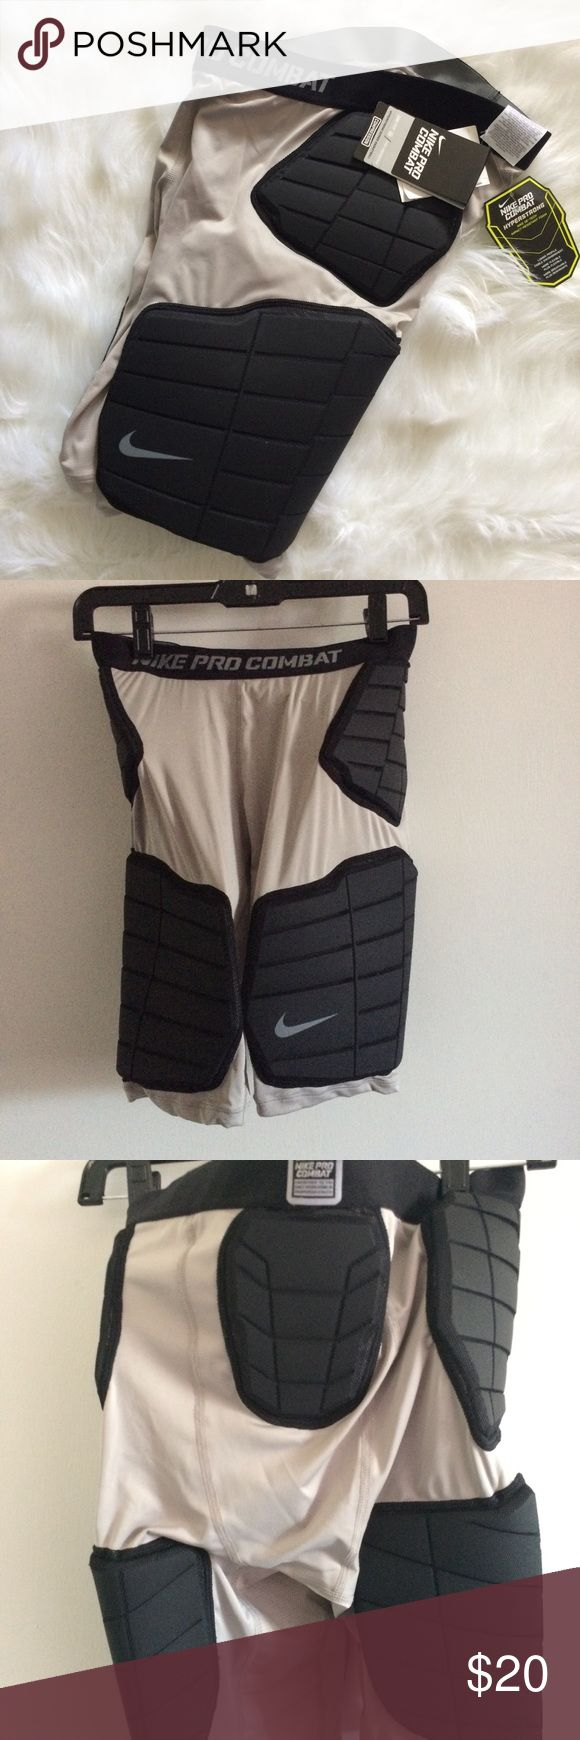 NWT Nike Pro Combat Hyperstrong Basketball Shorts Dri-fit. Women's size large. Has impact-resistant foam. Excellent for athletes Nike Shorts